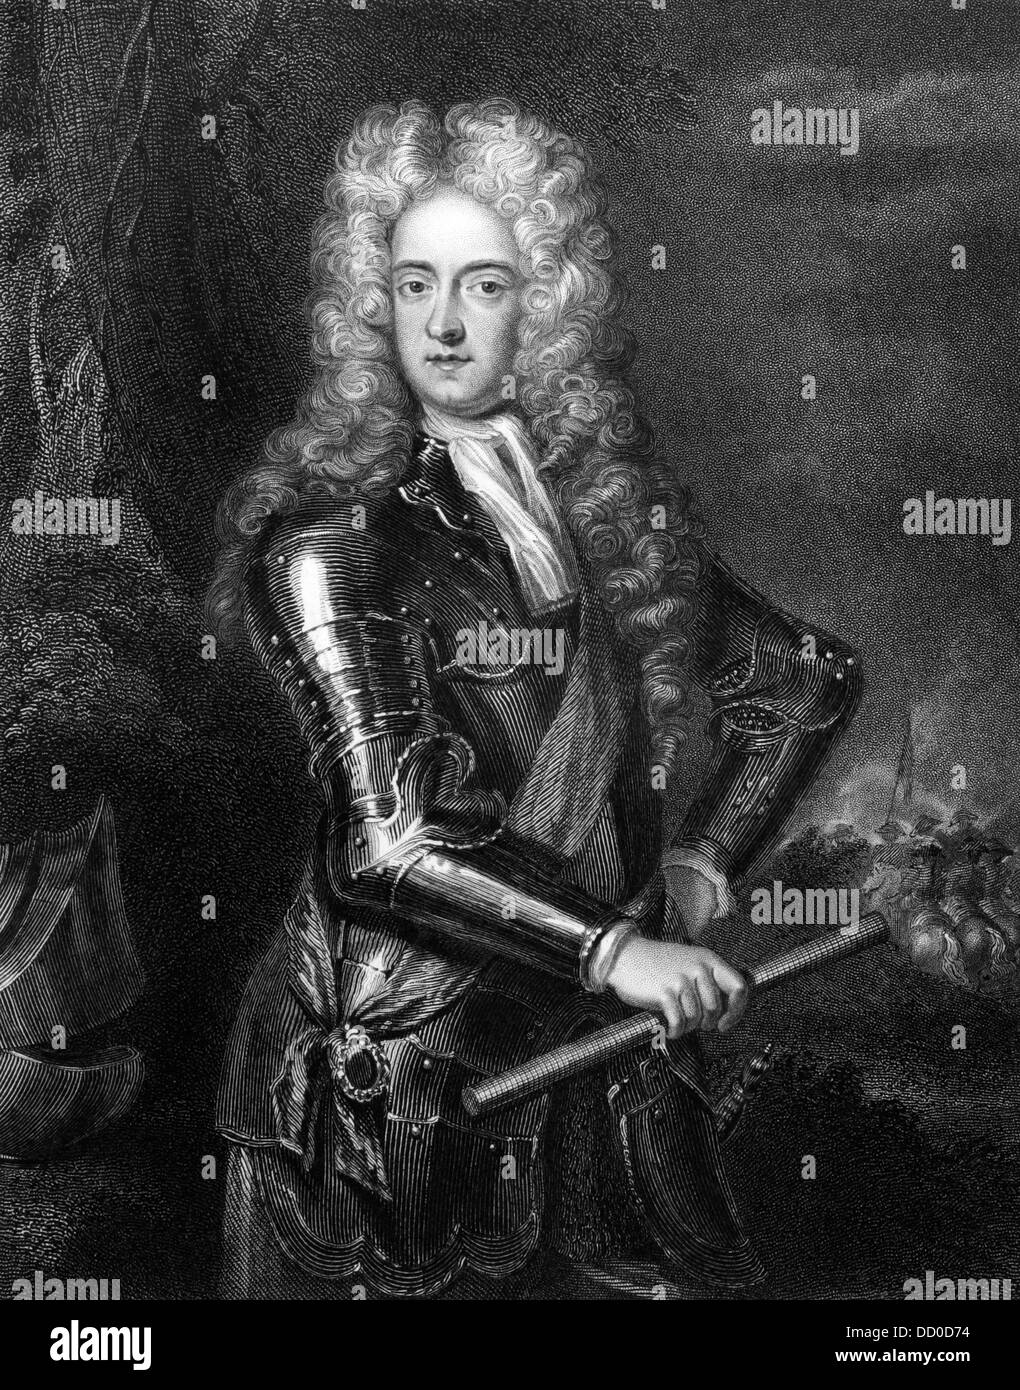 James Butler, 2nd Duke of Ormonde (1665-1745) on engraving from 1830. Irish statesman and soldier. - Stock Image